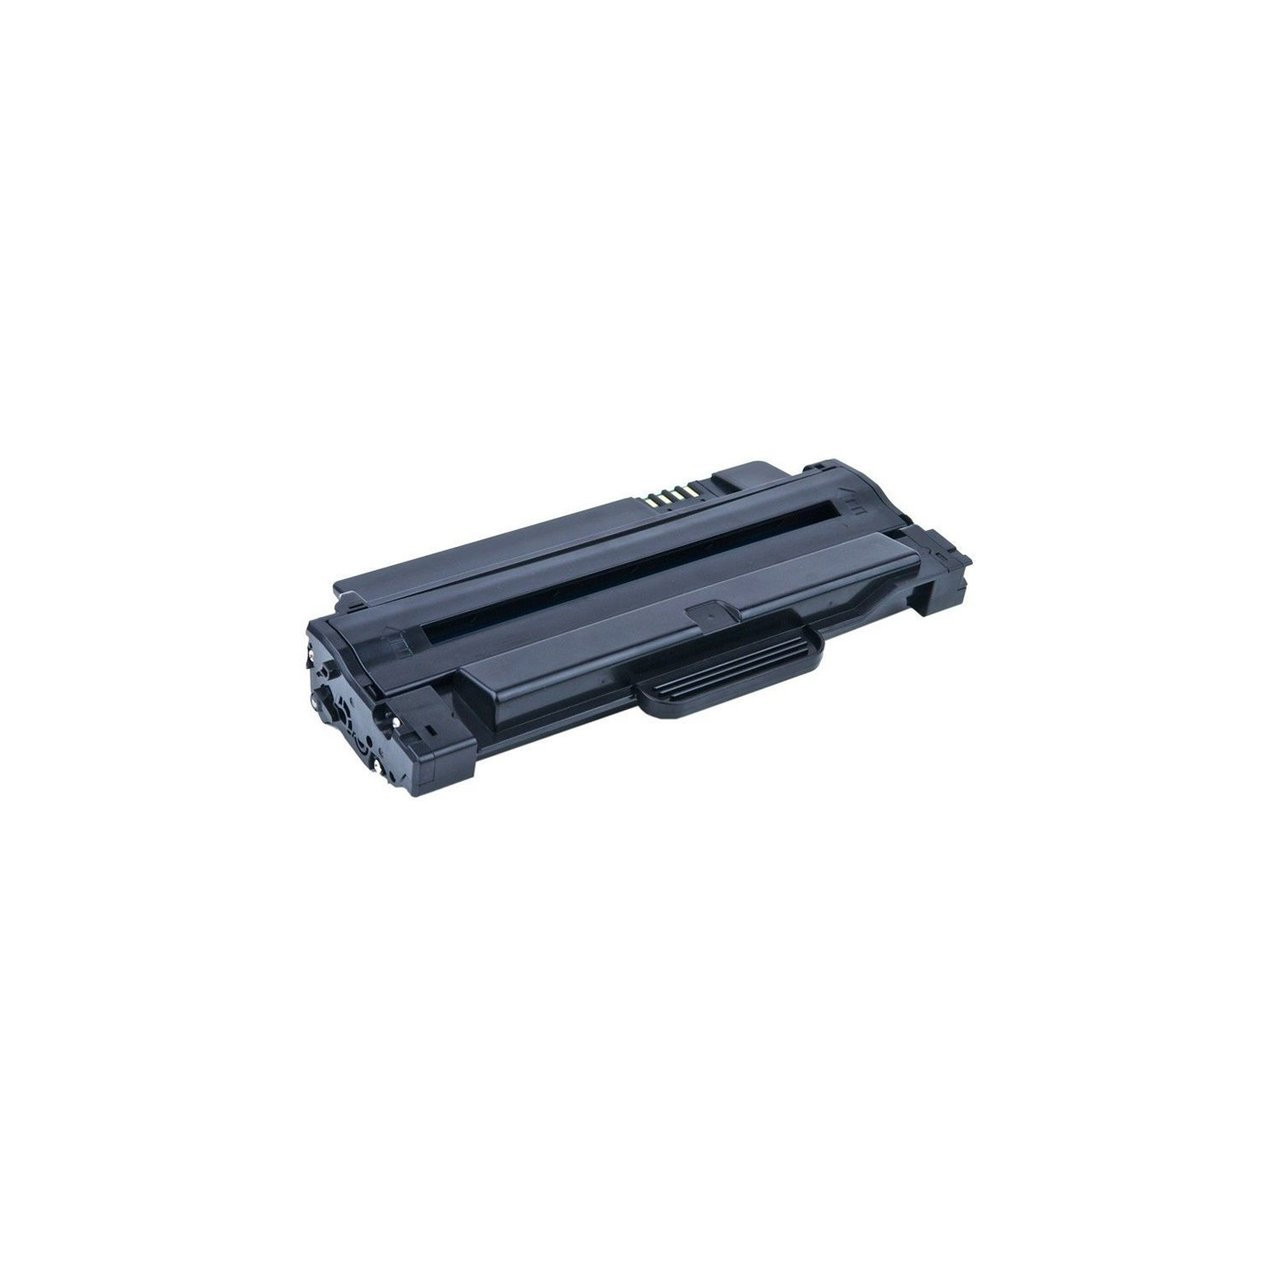 Green Apple Imaging Brand ,Dell 330-9523 (7H53W) High Yield Remanufactured  Black Toner Cartridges for your Dell 1130/1133/1135 Laser Printer- 2,500